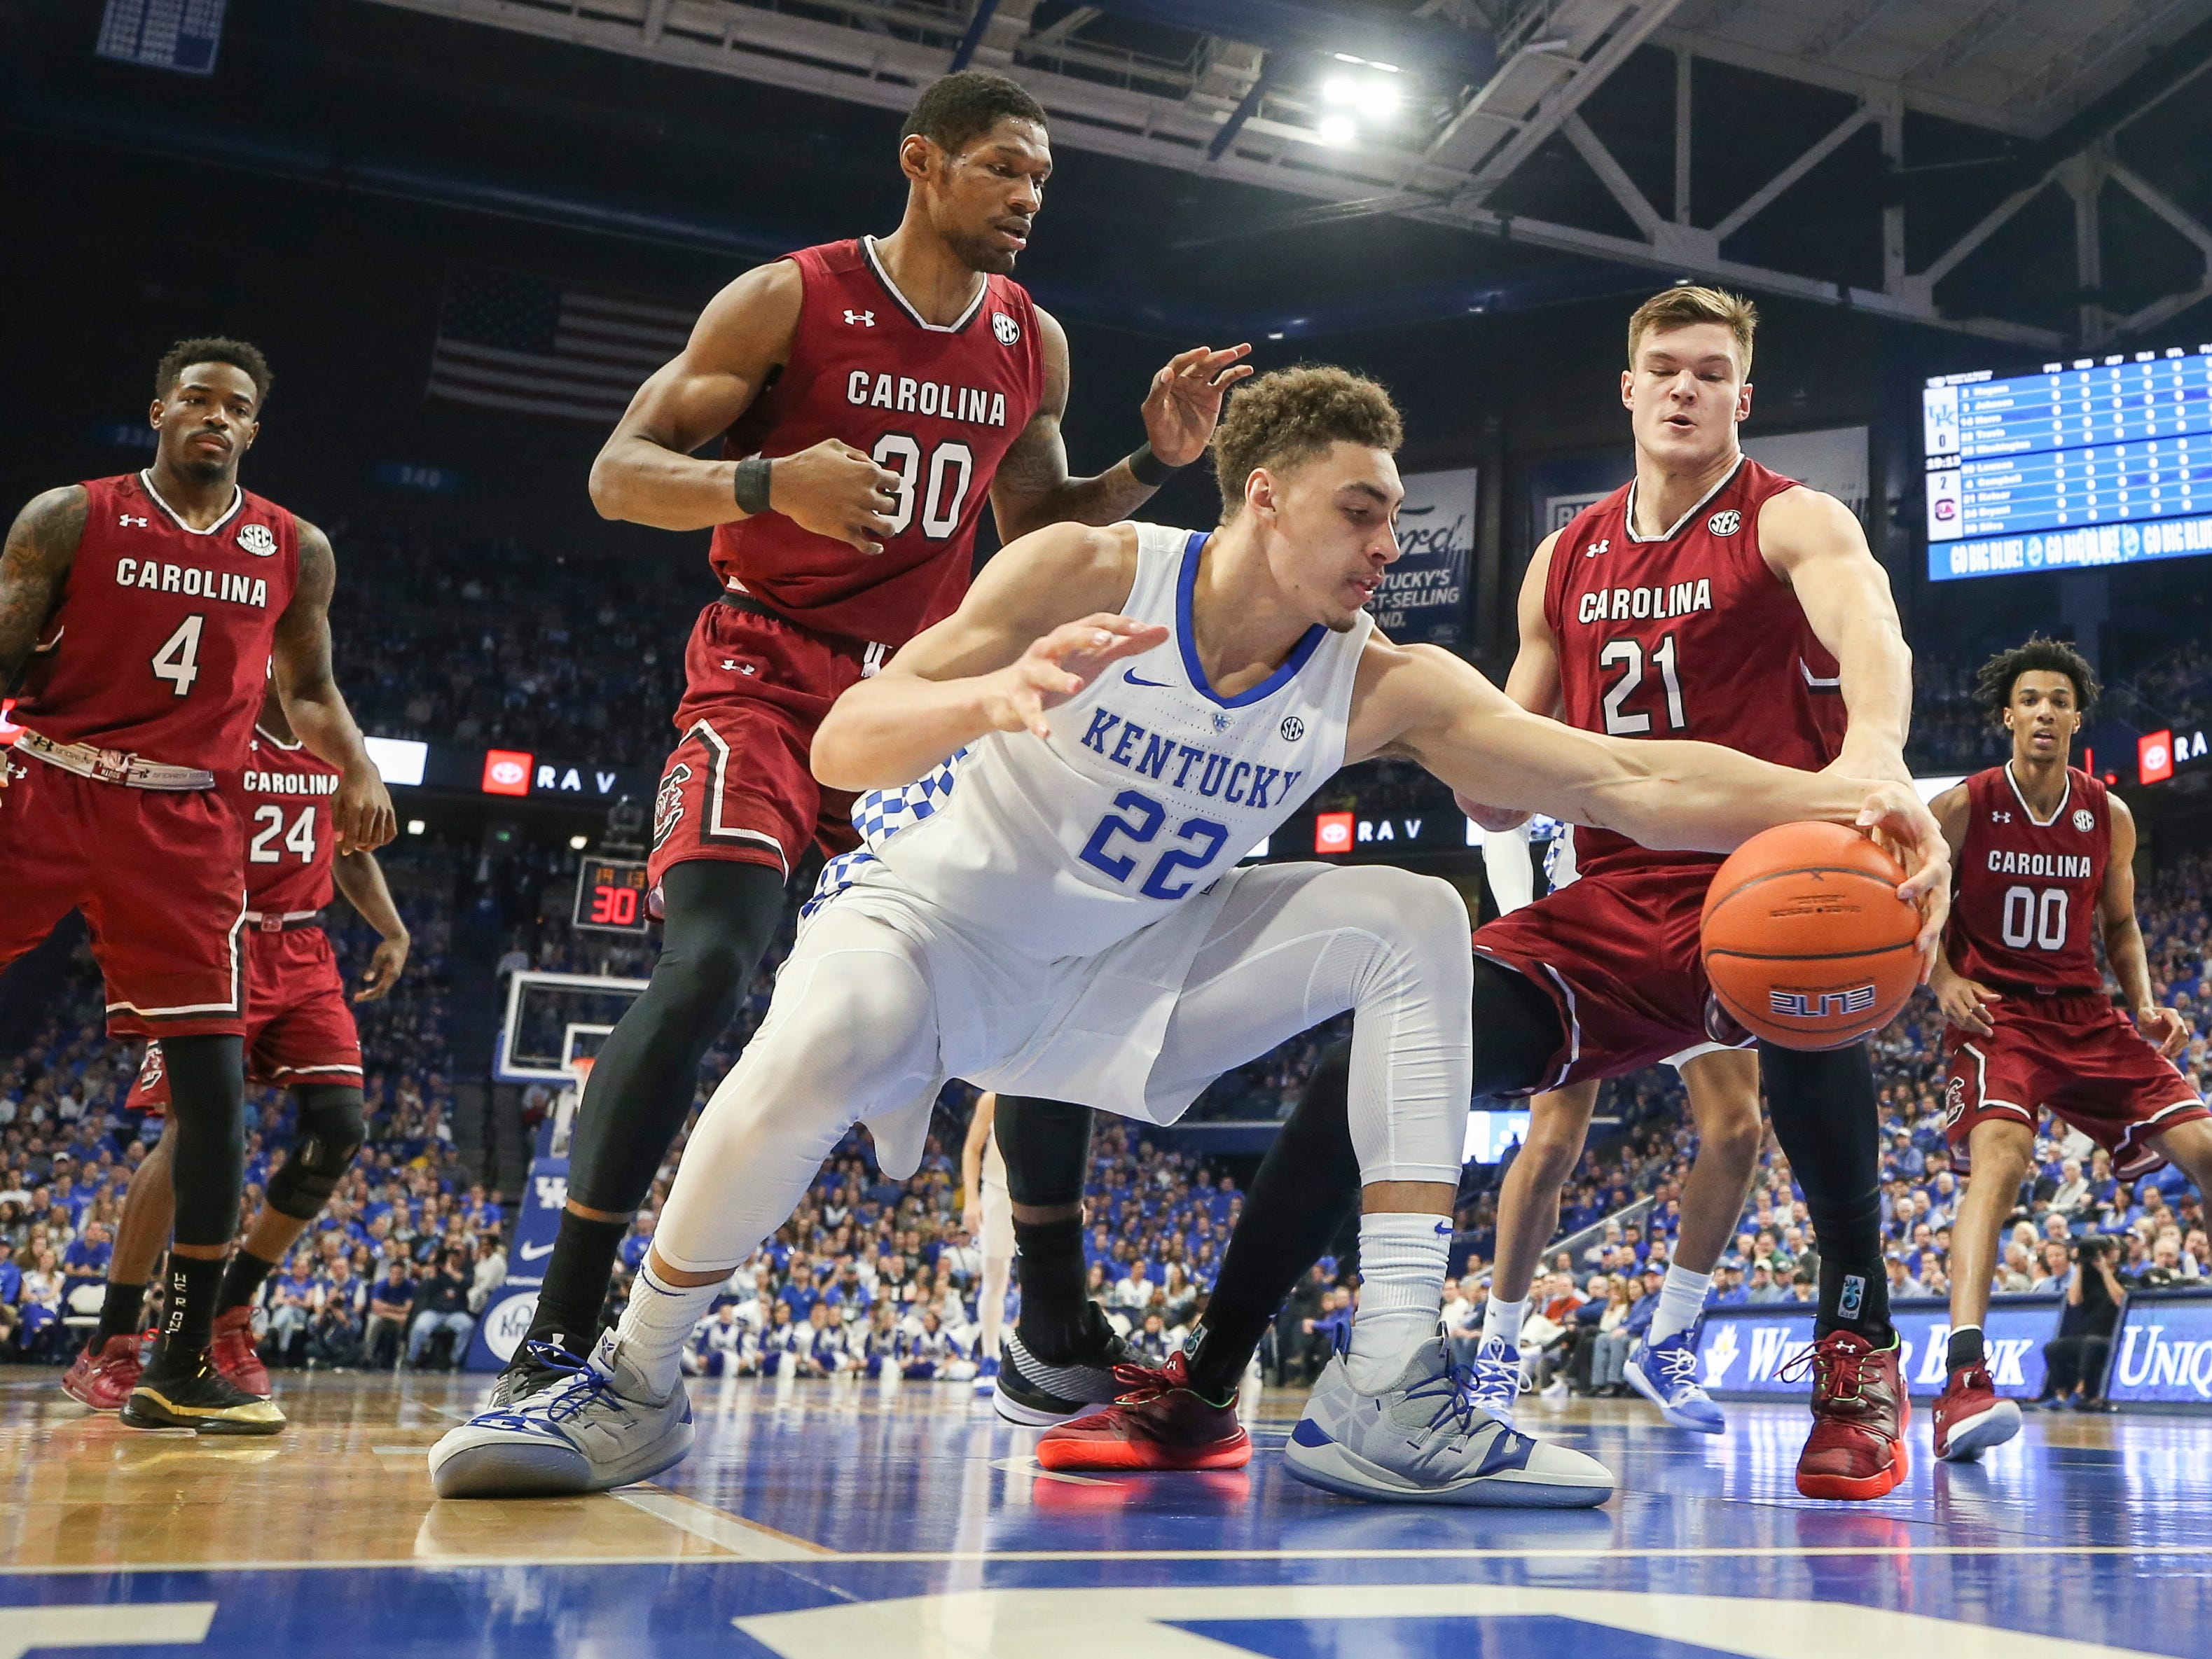 Kentucky's Reid Travis tries to grab a loose ball in the first half Tuesday night against South Carolina at Rupp Arena. Feb. 5, 2019